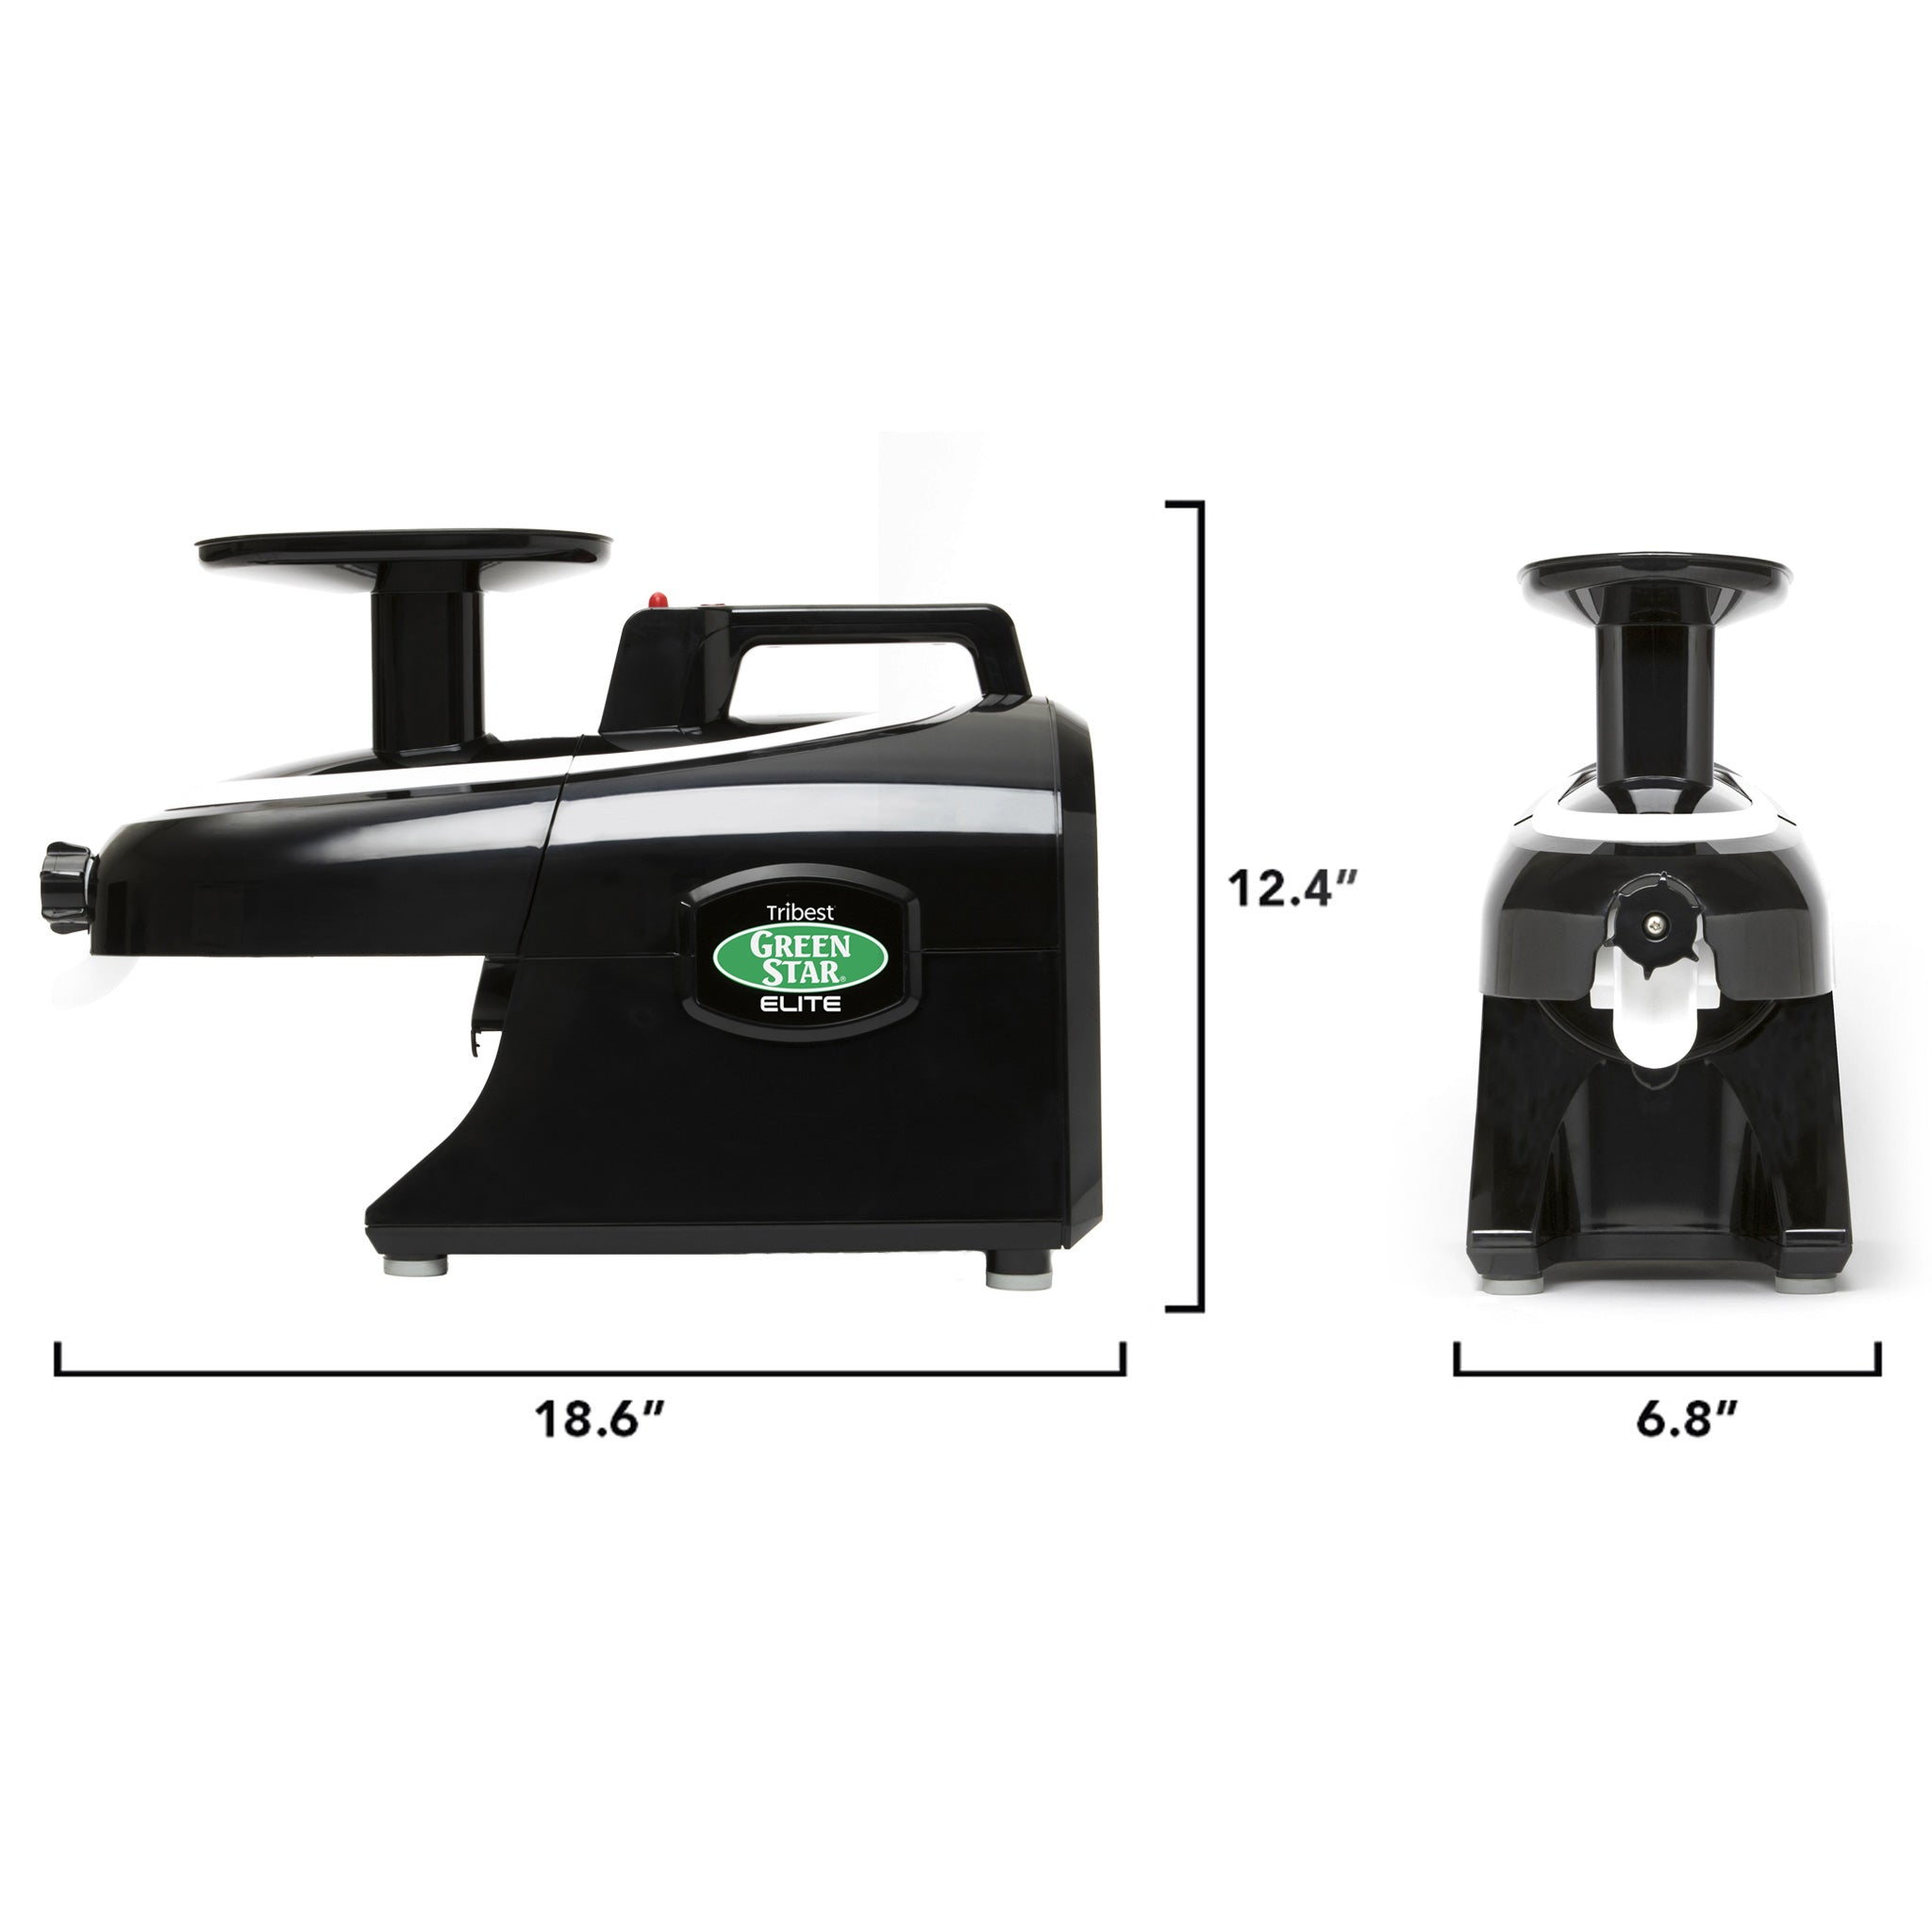 "Greenstar® Elite Jumbo Twin Gear Slow Masticating Juicer in Black GSE-5010-B - Size 18.6"" W x 6.8"" D x 12.4"" H - Tribest"